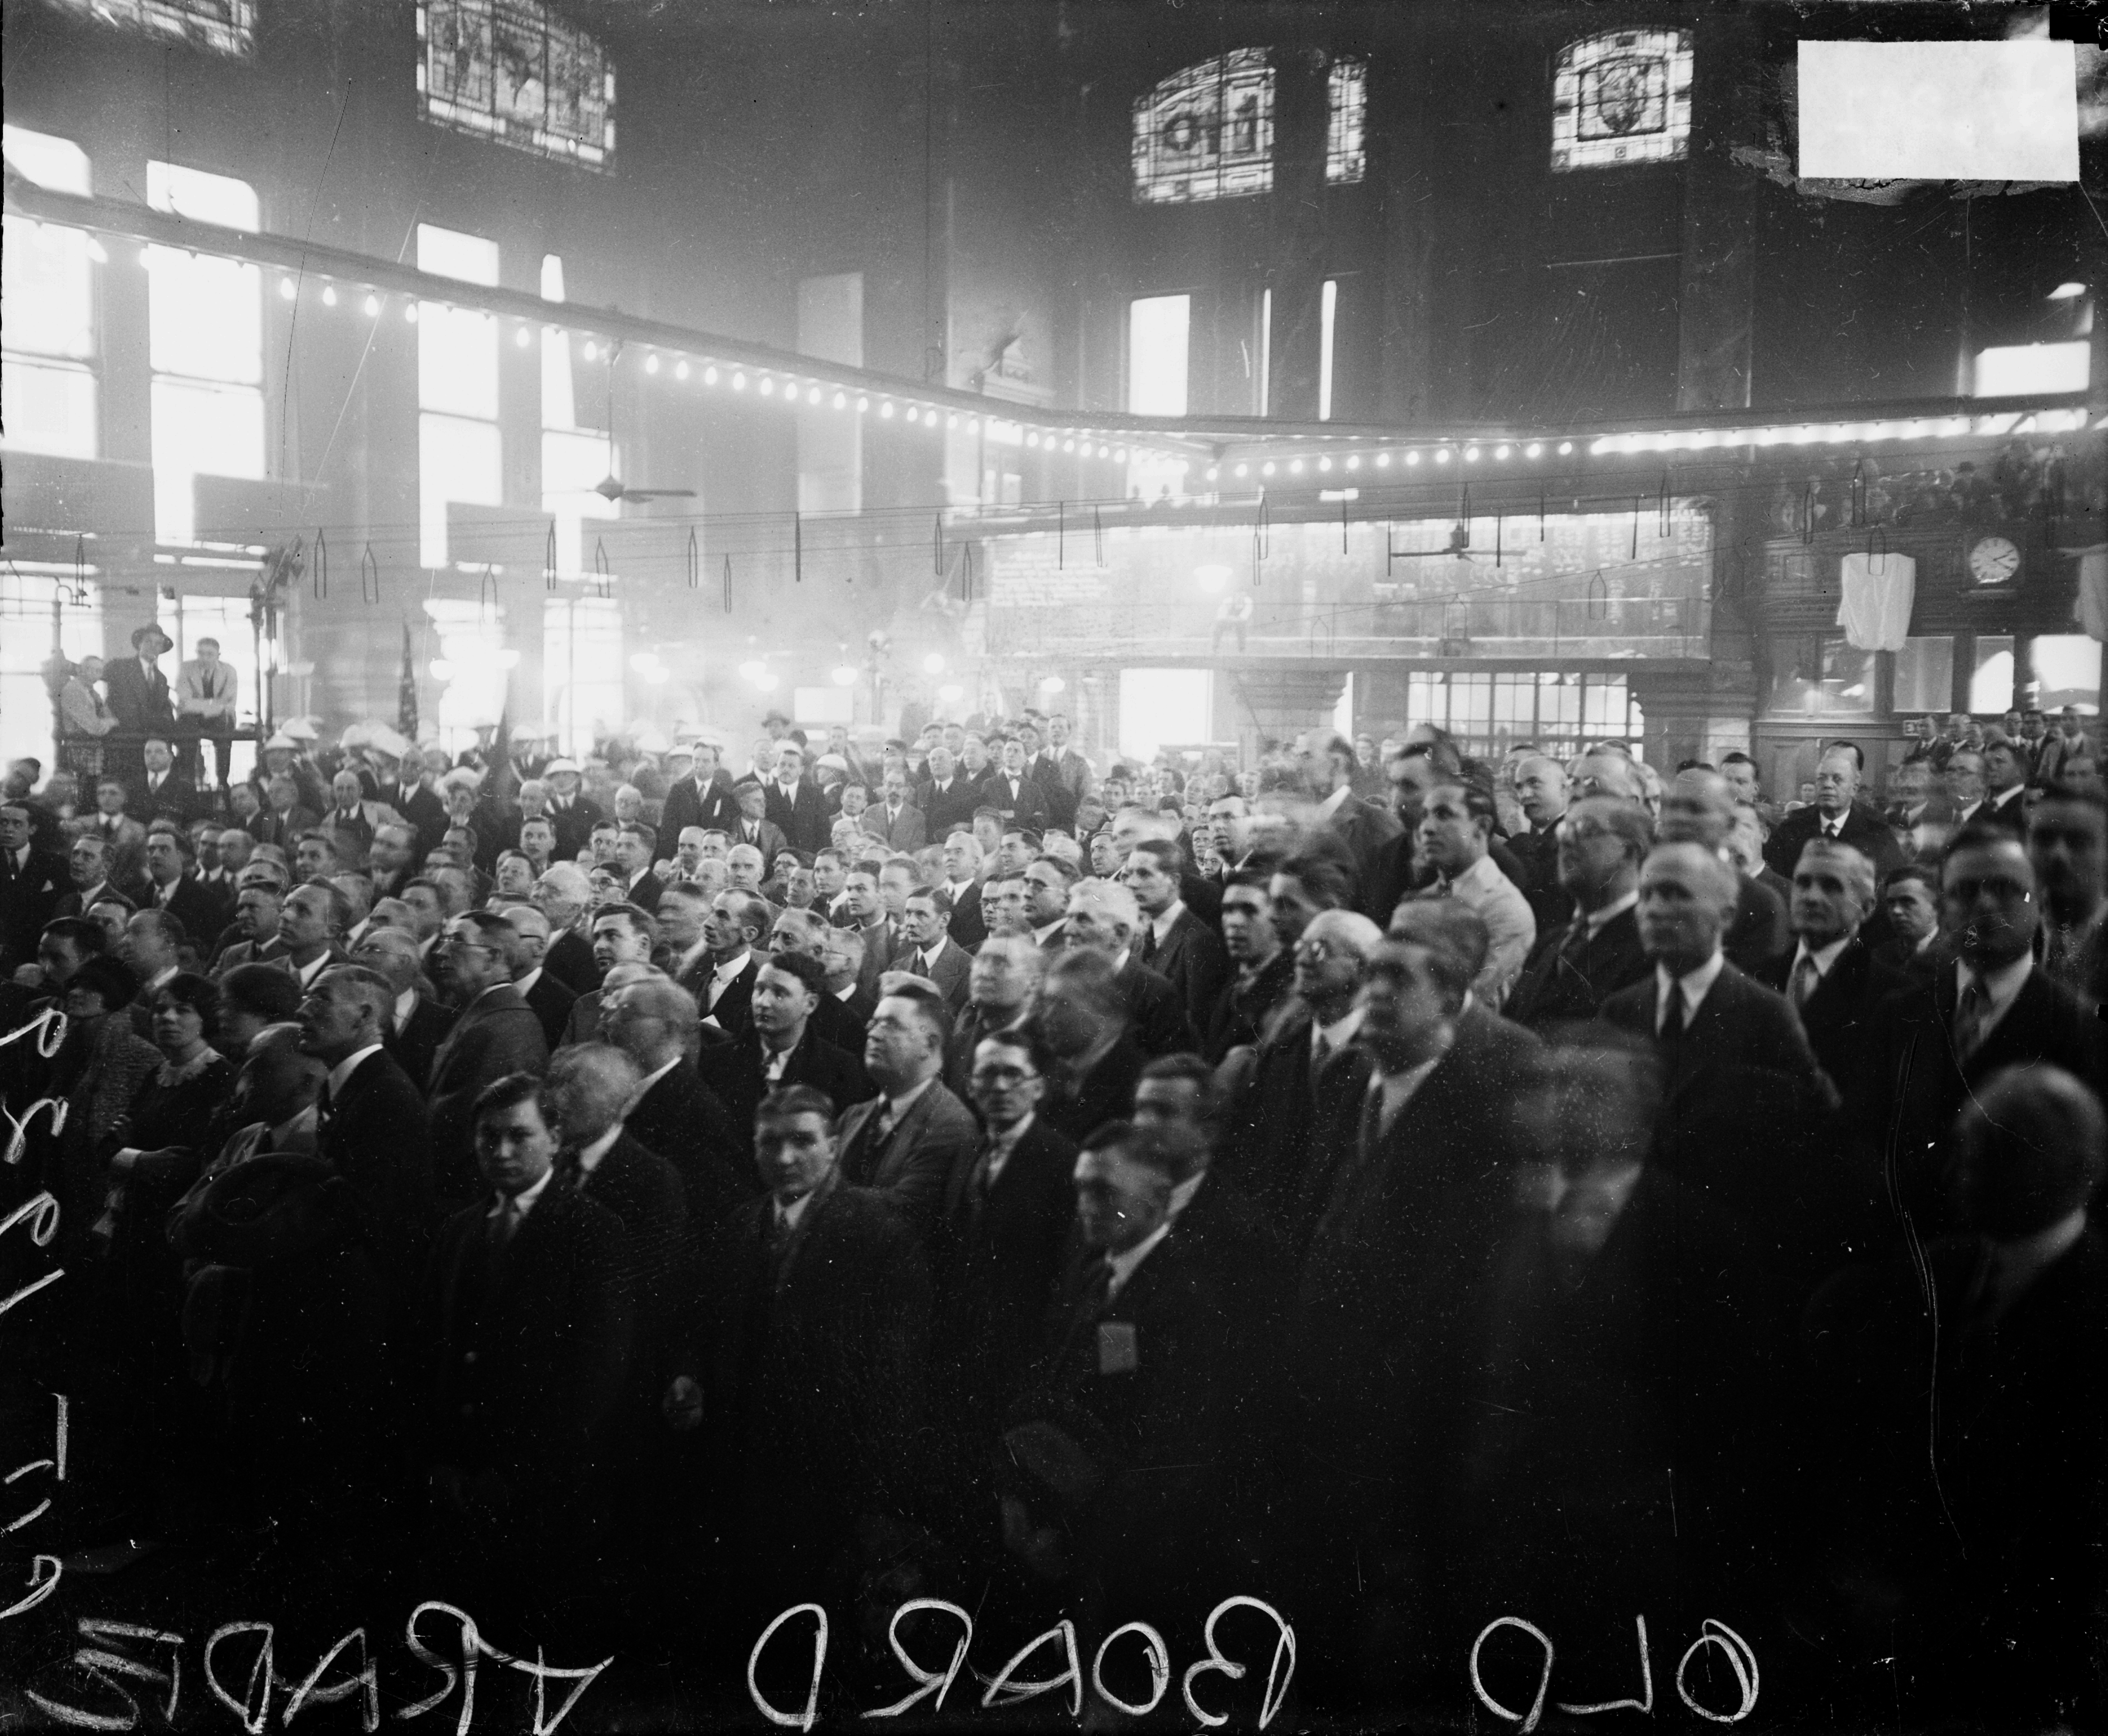 Crowd At Chicago's Board Of Trade